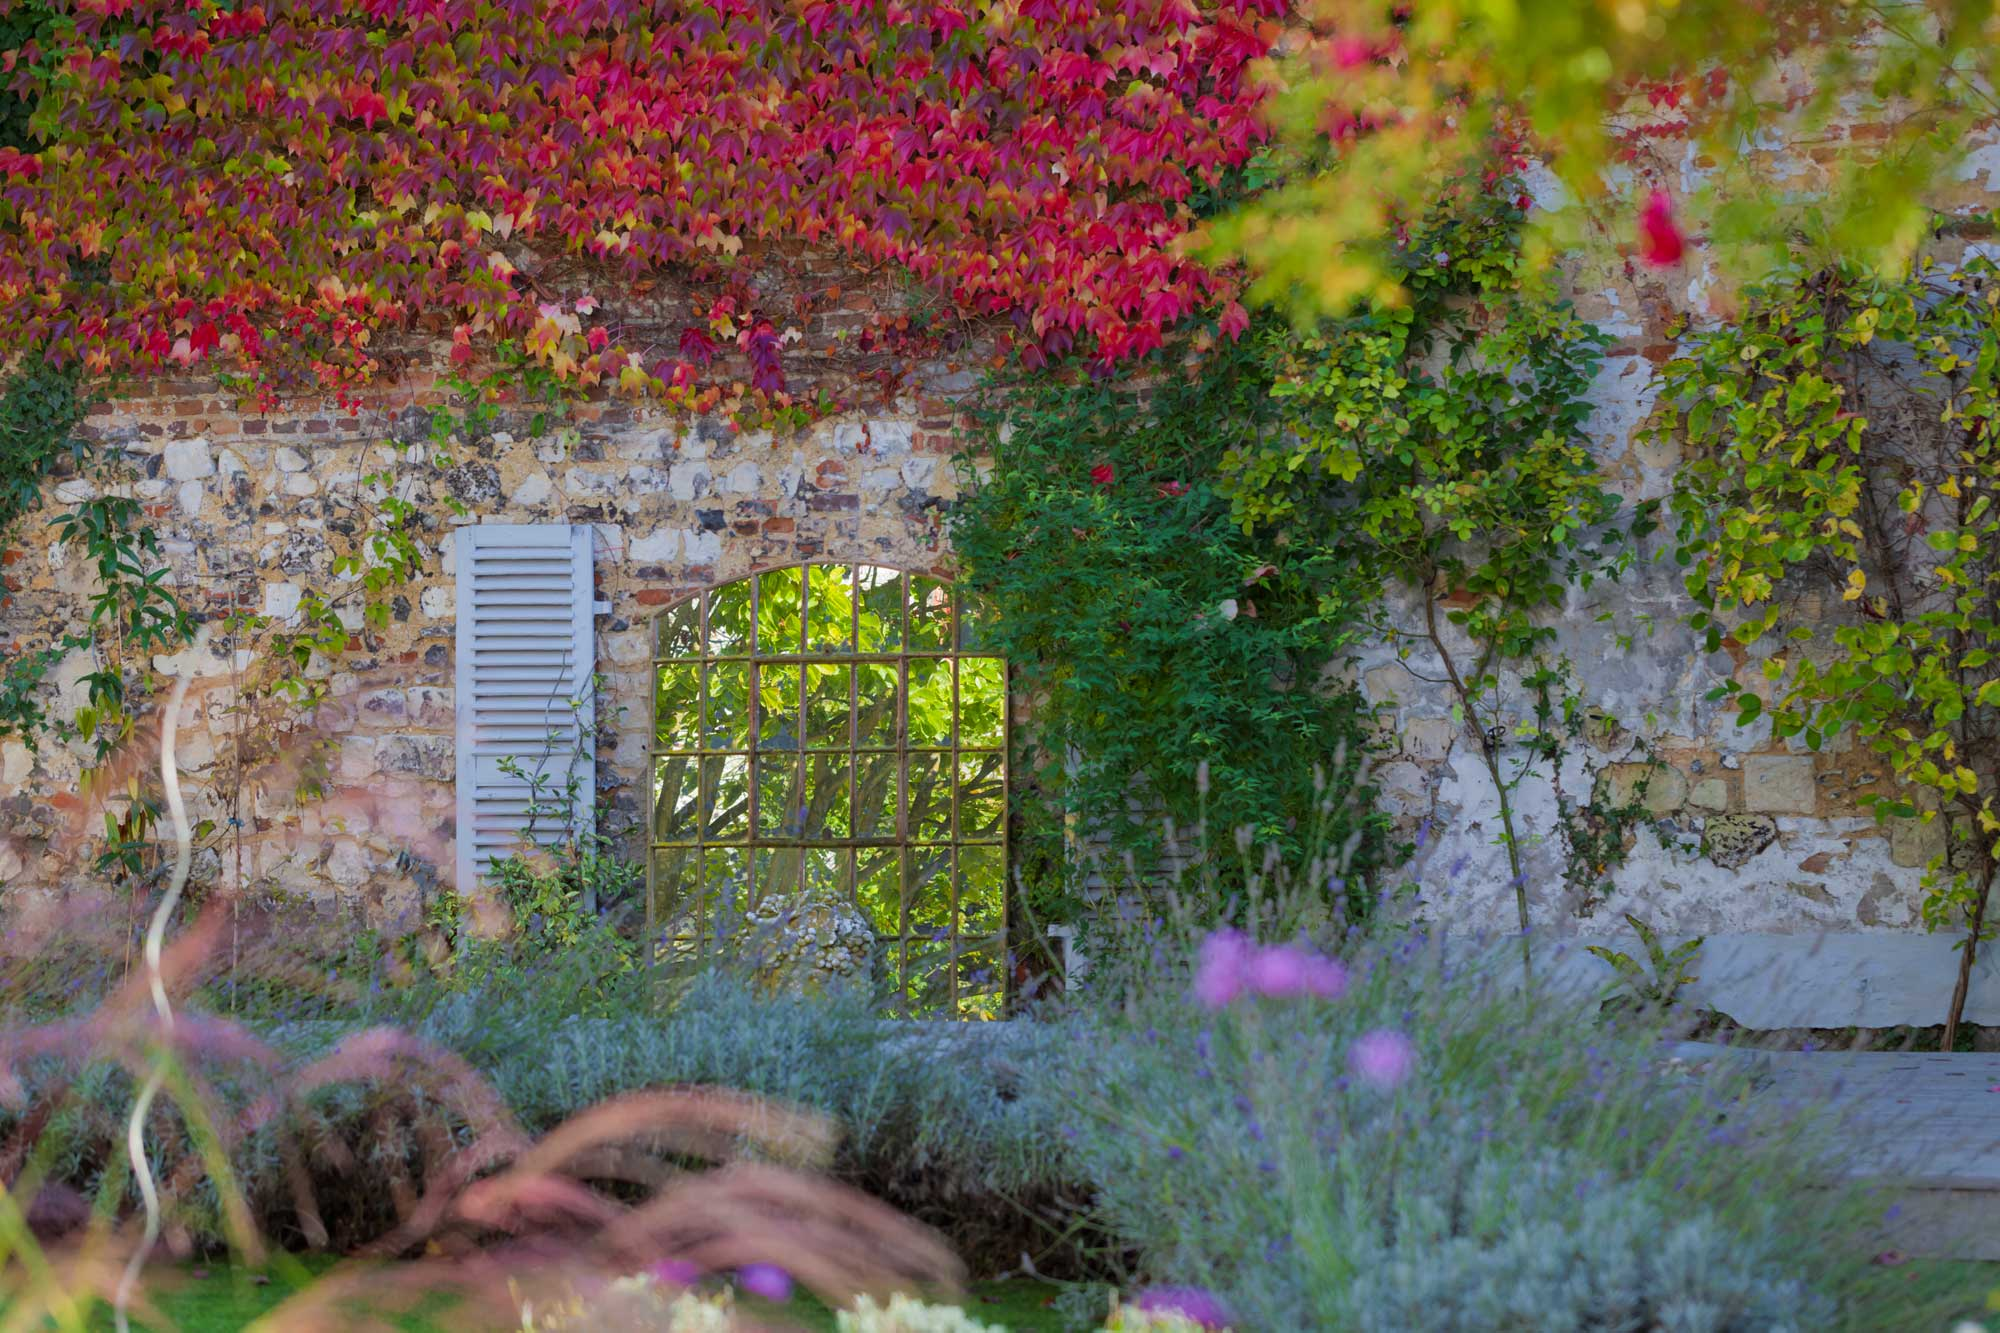 Autumn colours in the garden at Maison76